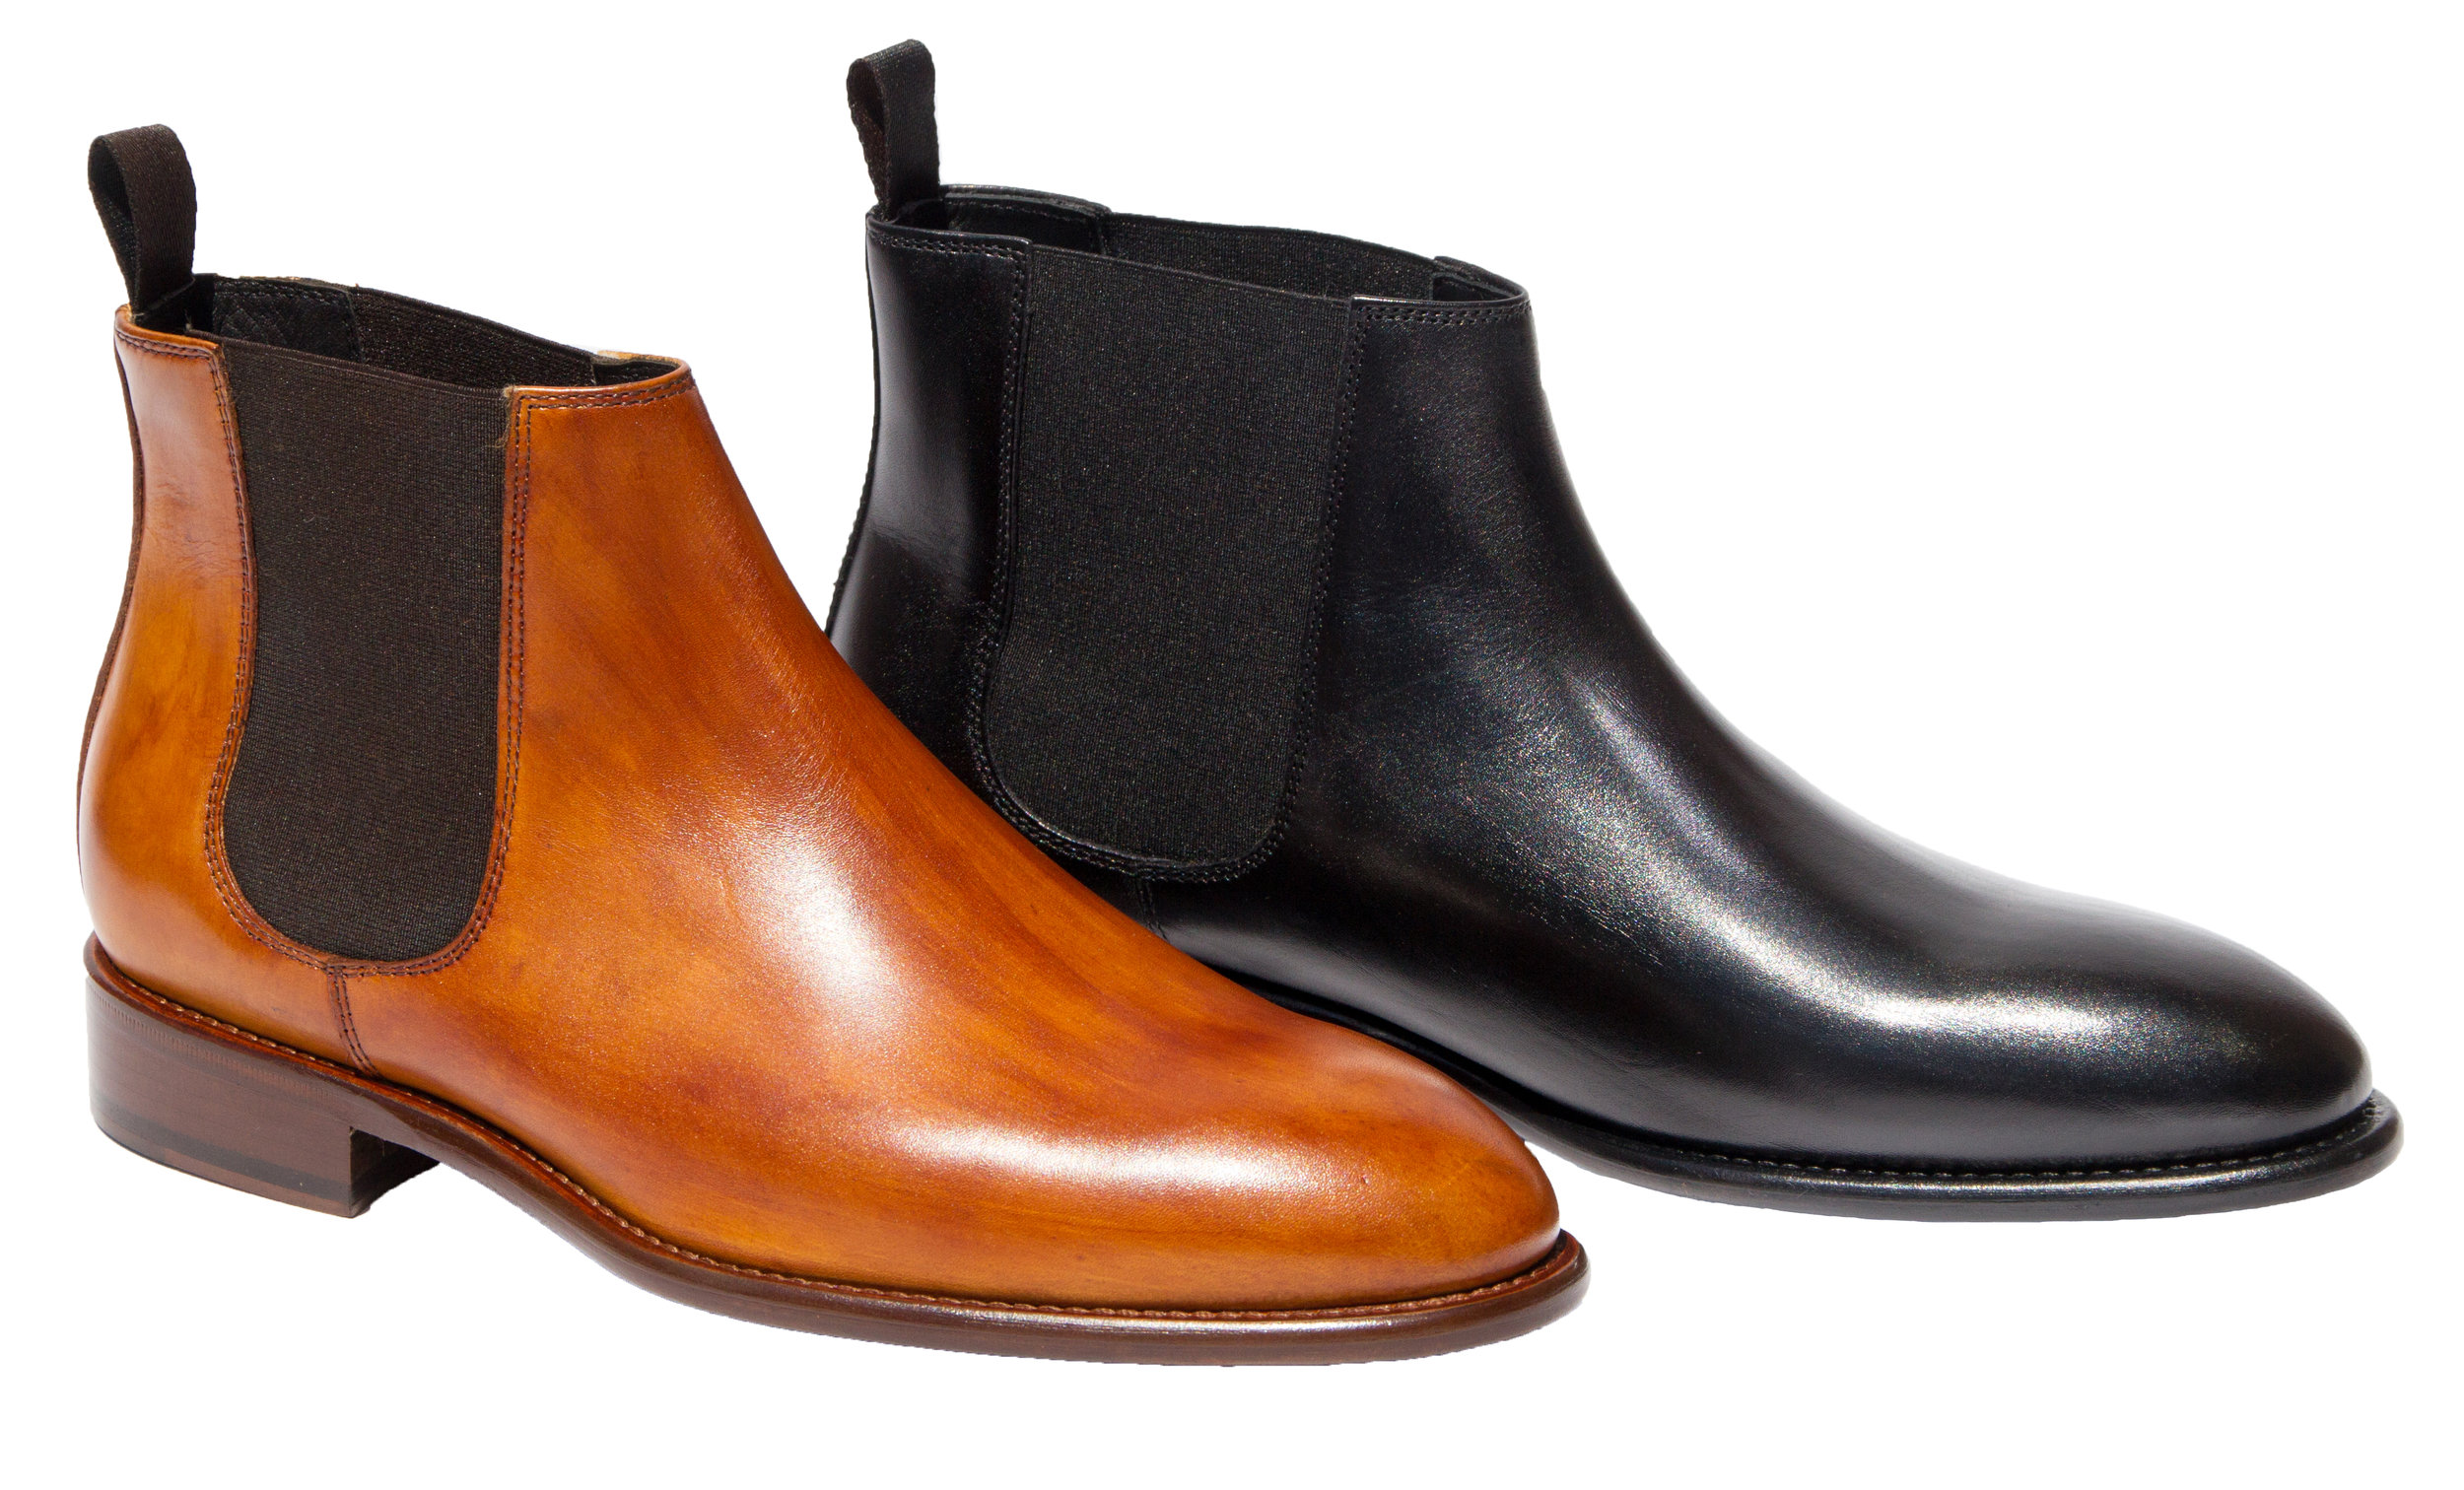 Style # 1396: Caramel, Black  Cayenne Calf Artisan Handpainted Chelsea Boot    Sizes available: 41 to 47 EU, including half sizes